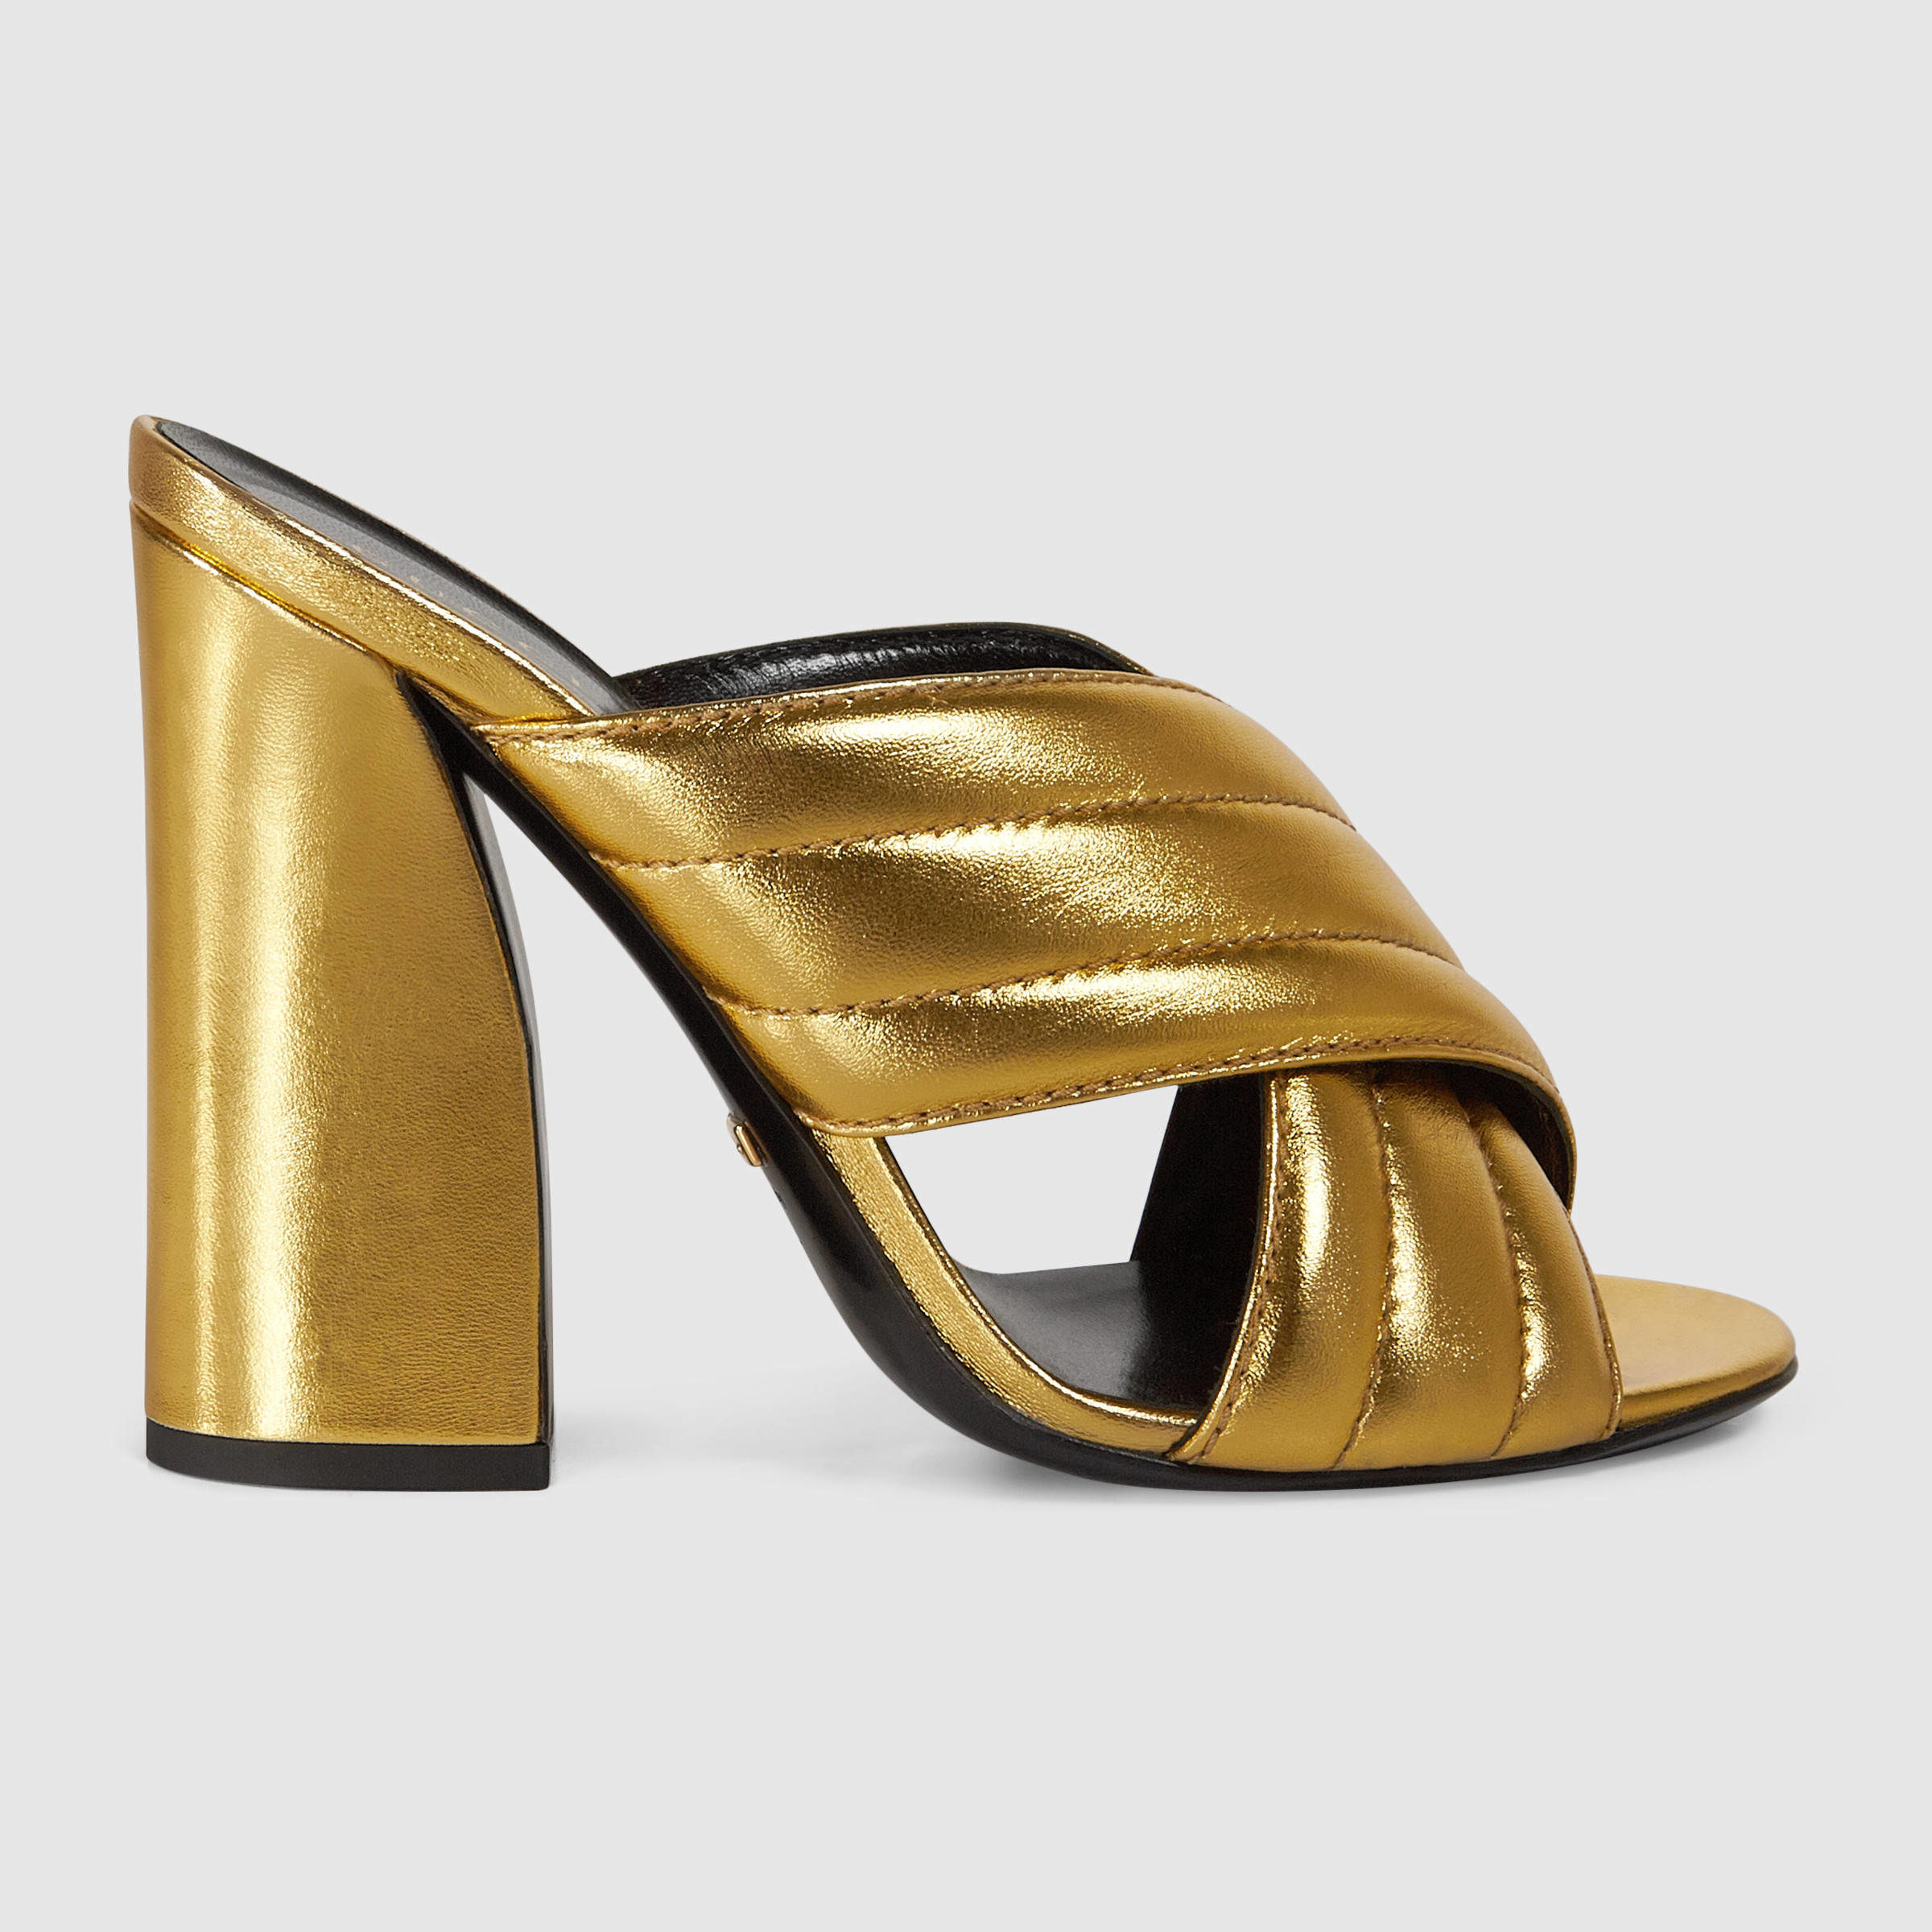 b78a26c04f39 Gucci Metallic Crossover Sandal in Metallic - Lyst